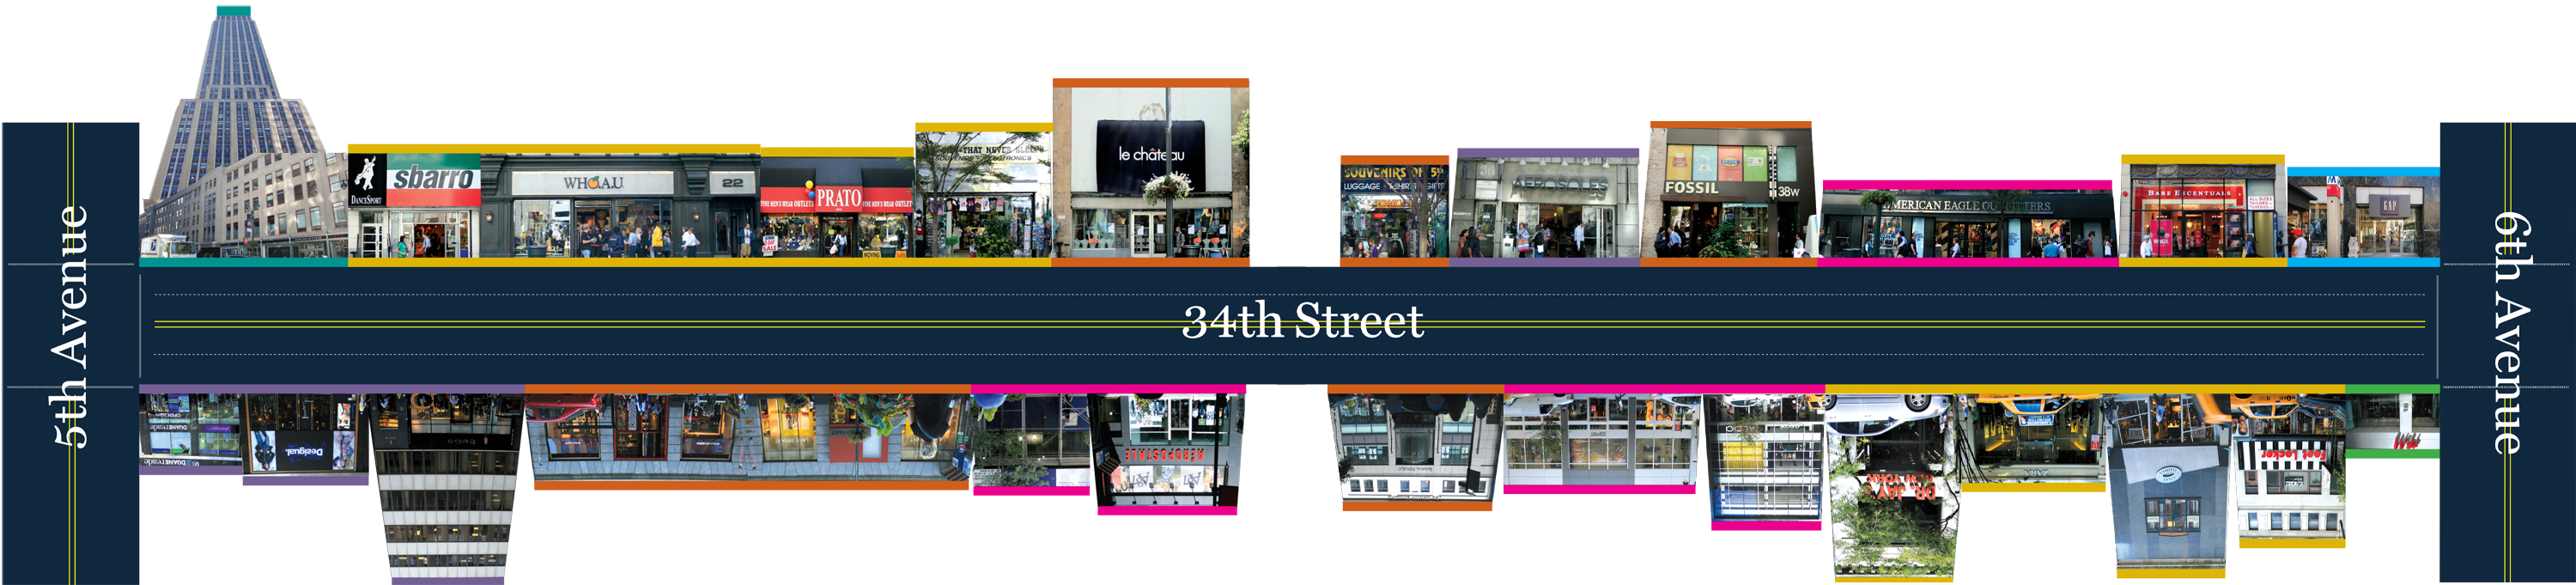 Clothing stores on 34th street   Clothing stores